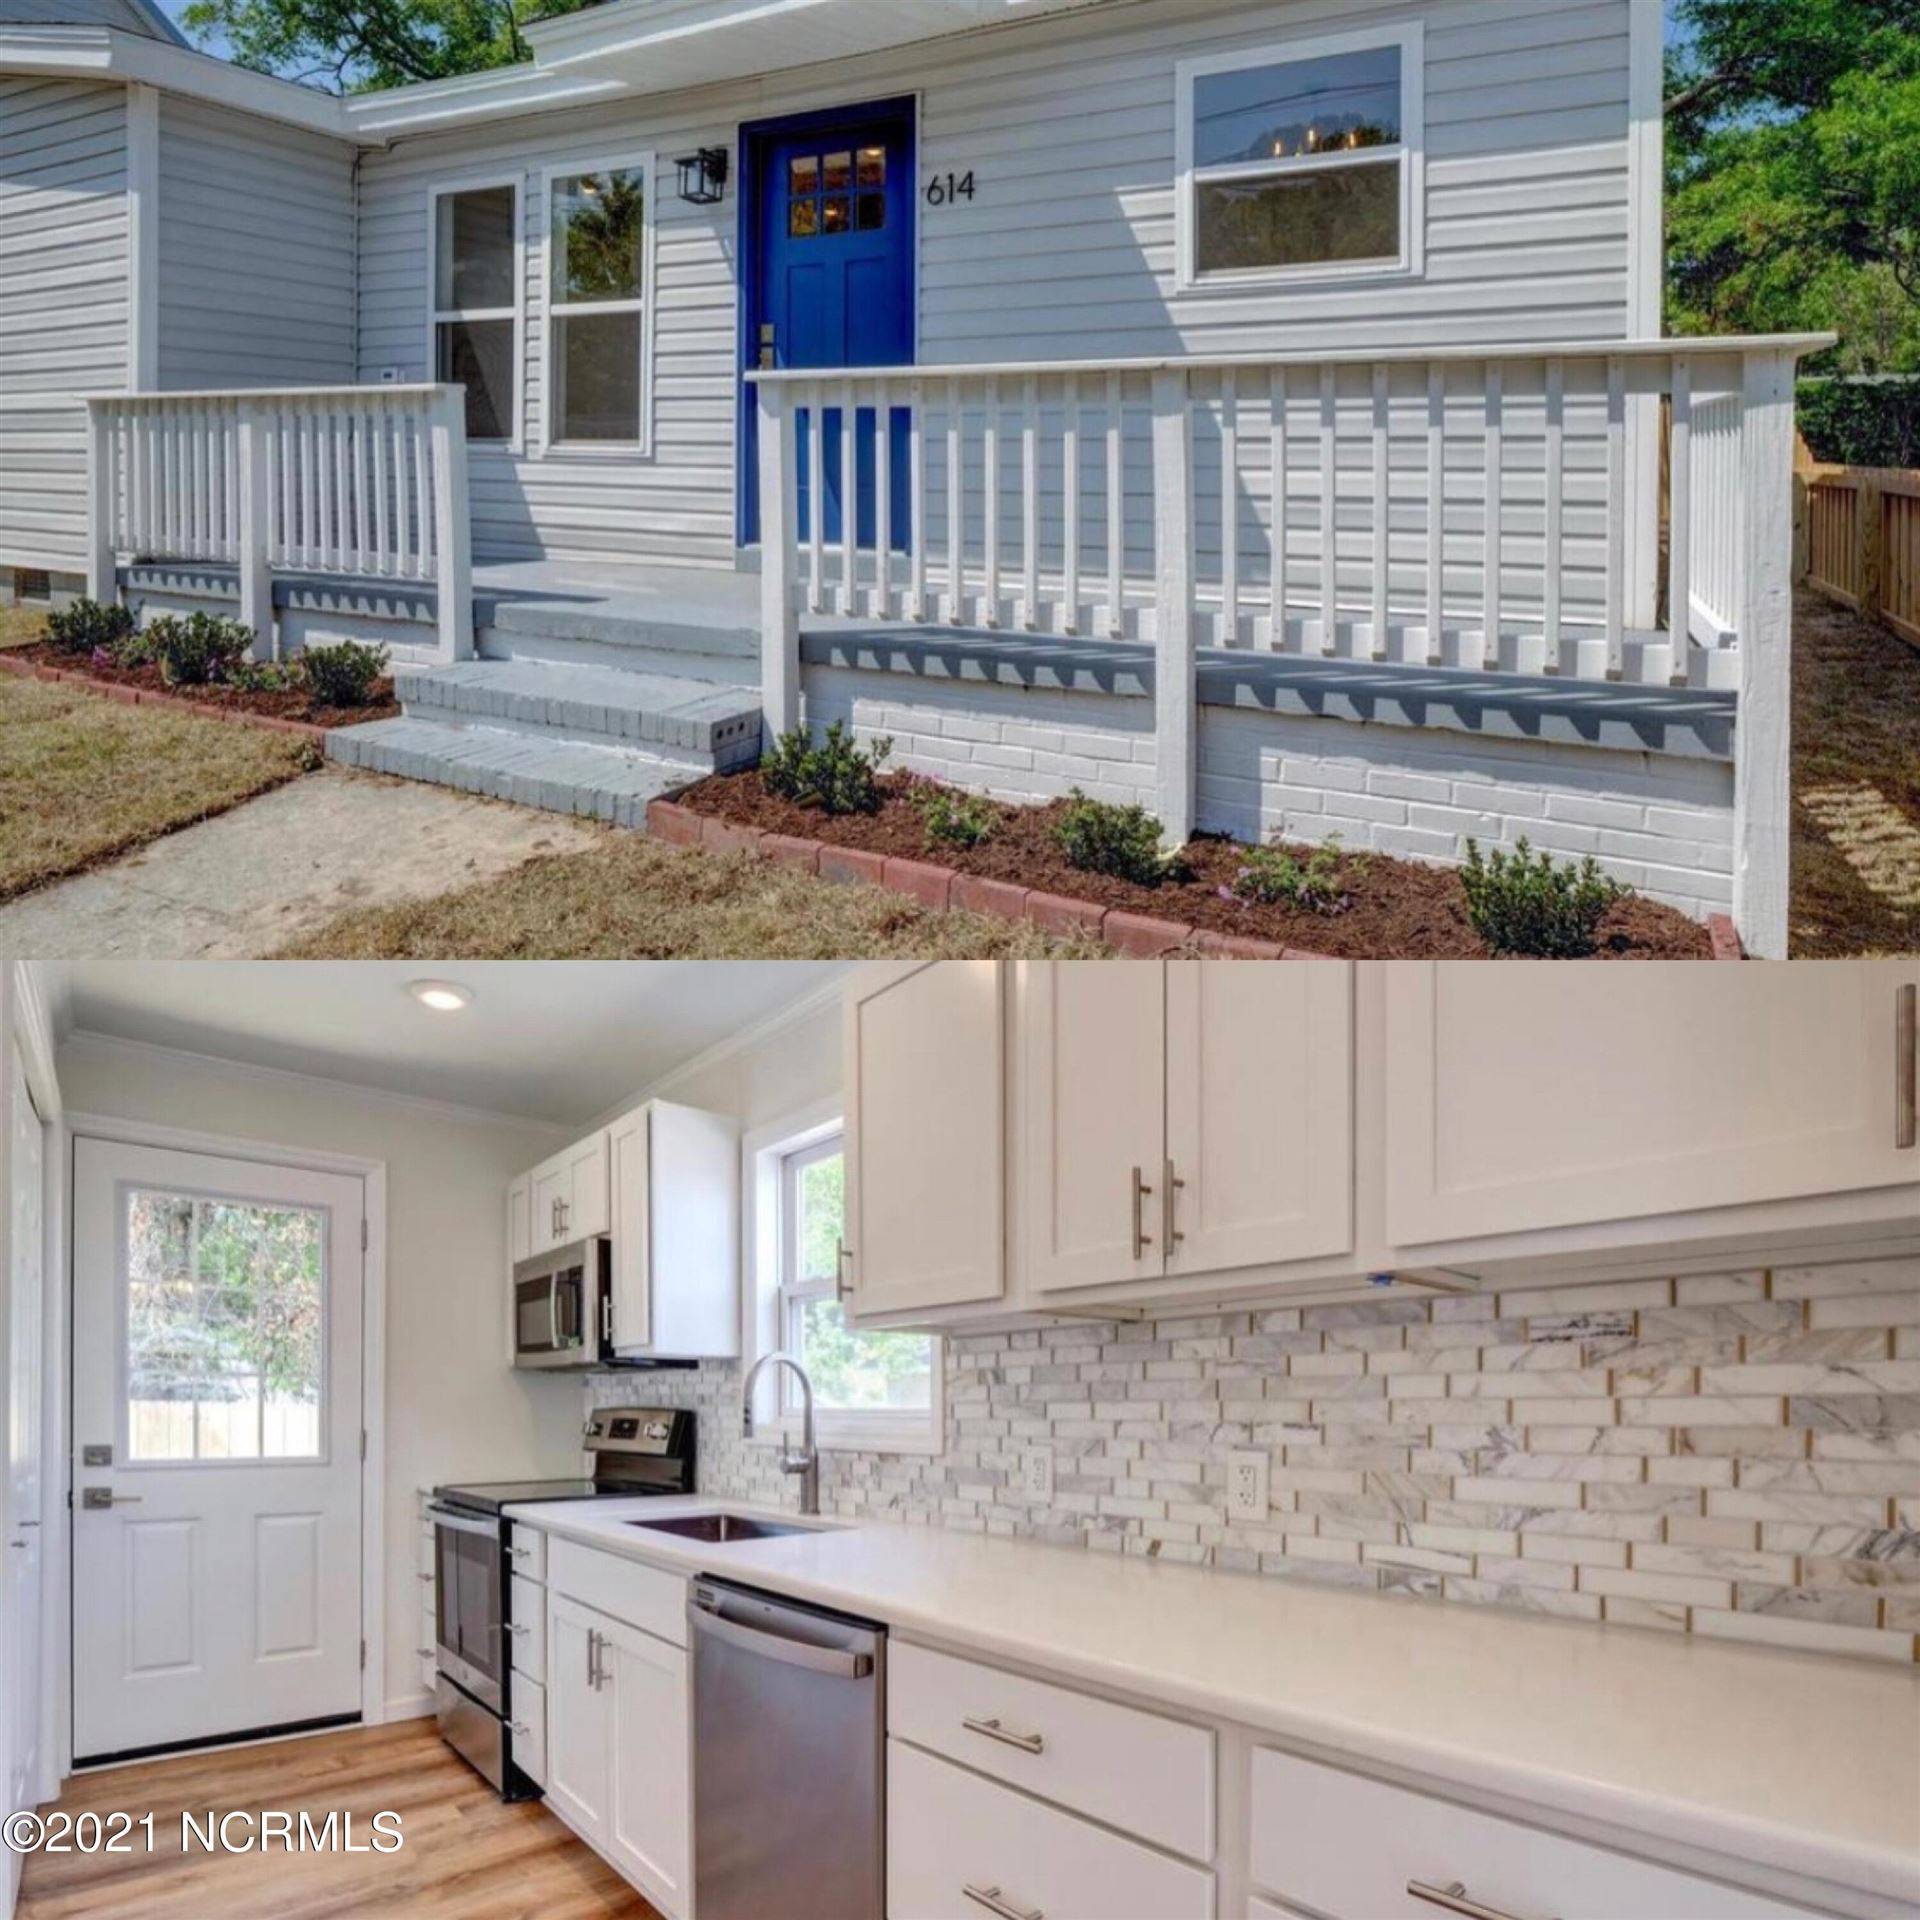 Photo for 614 S 9th Street, Wilmington, NC 28401 (MLS # 100266441)